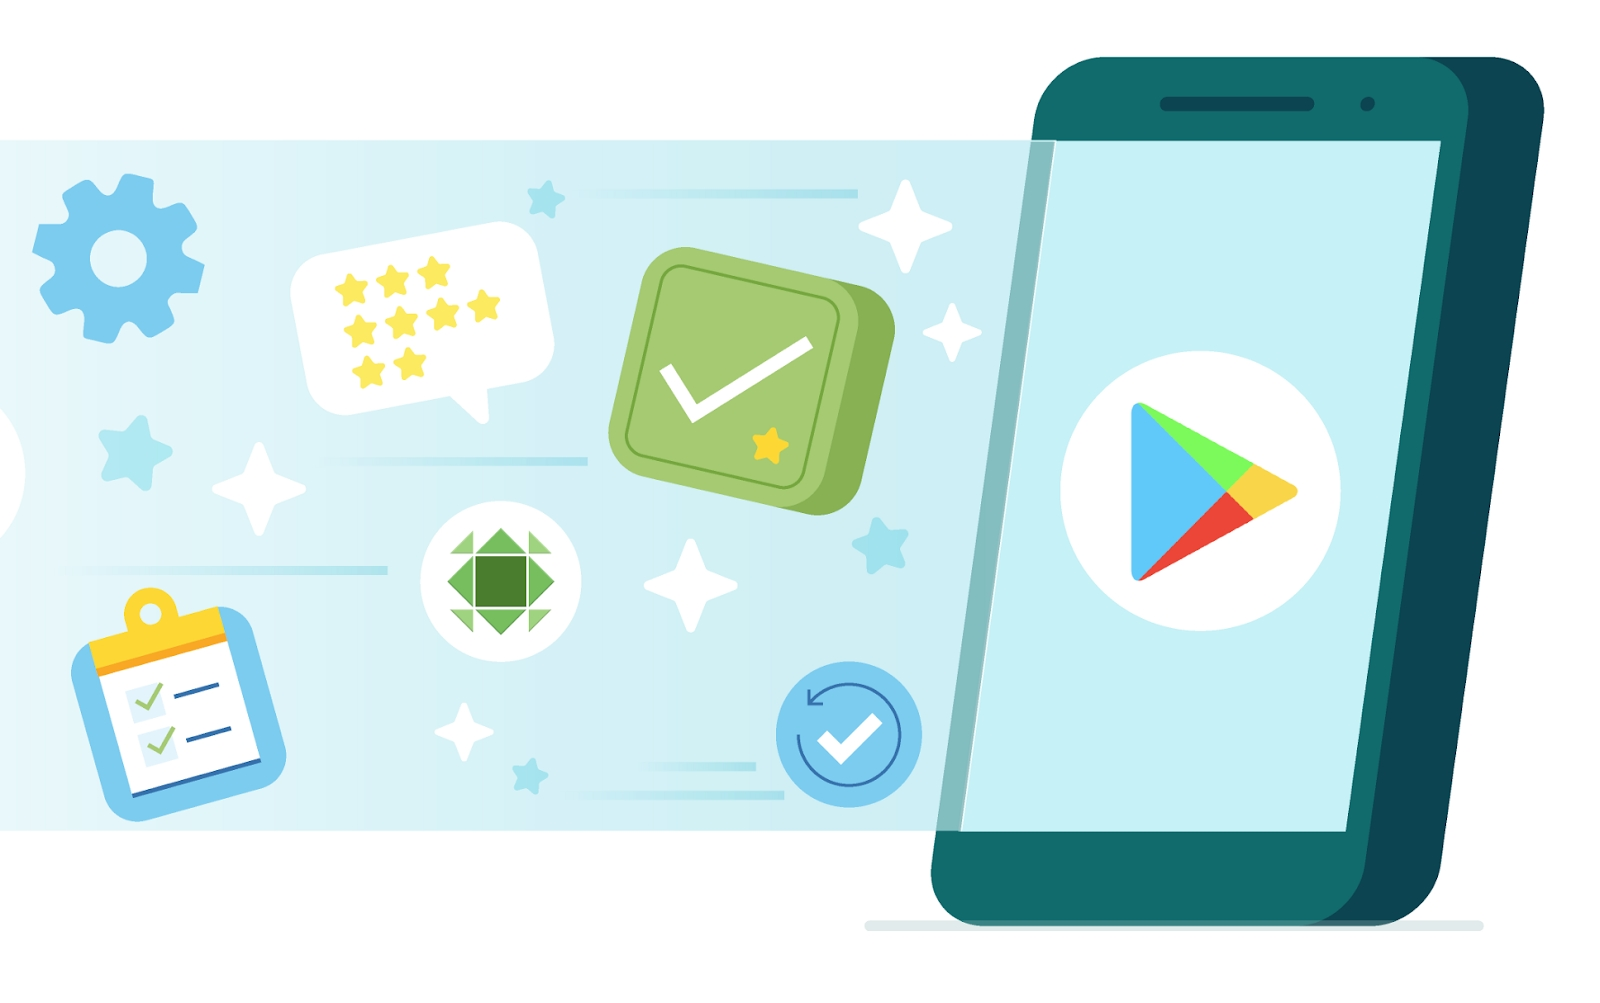 malware play Store google